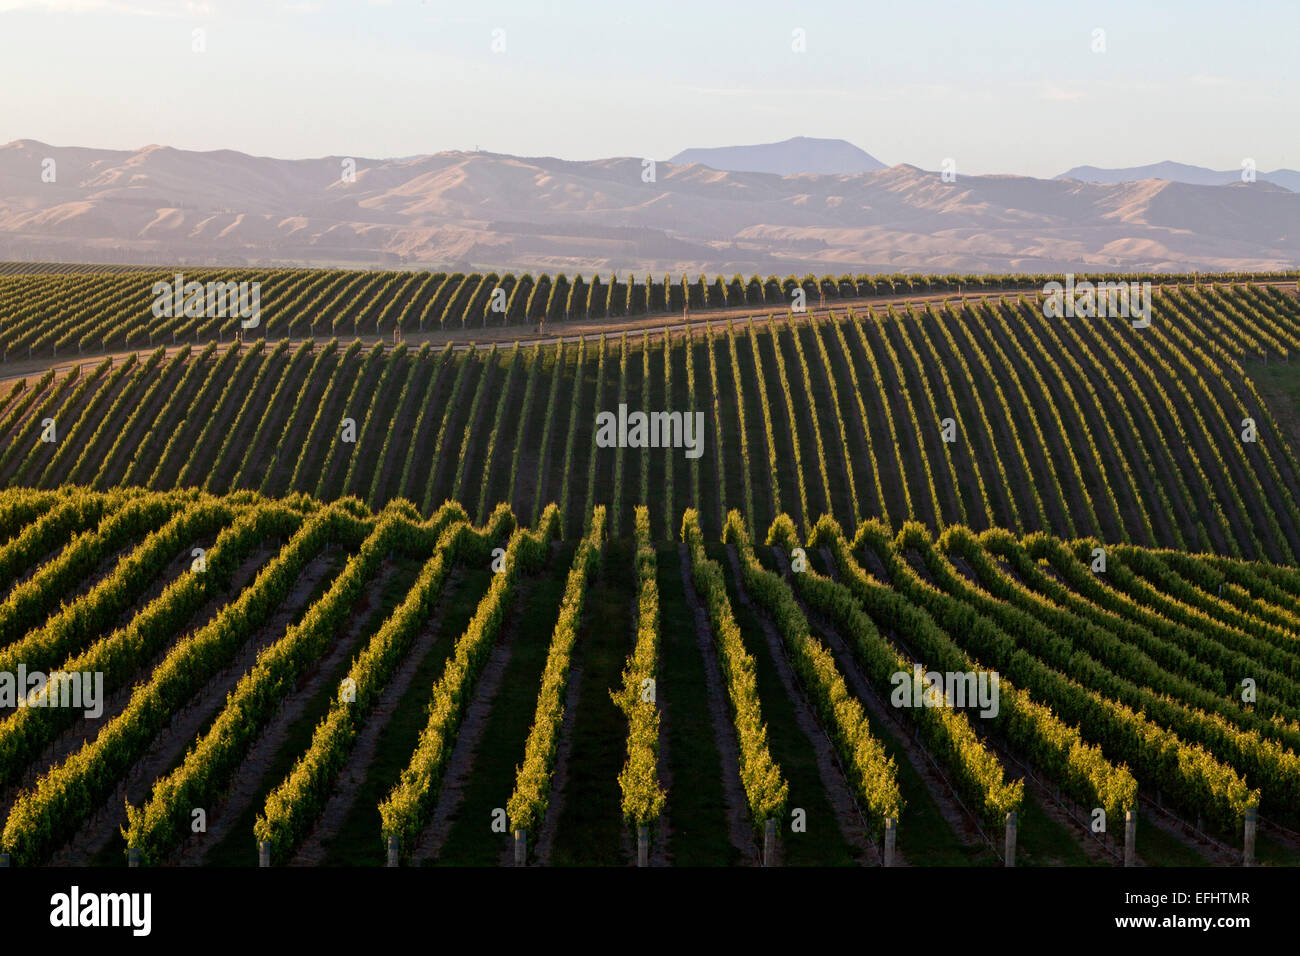 Rows of vines and vineyards from the Yealands Estate, Winery in Awatere Valley, South Island, New Zealand - Stock Image